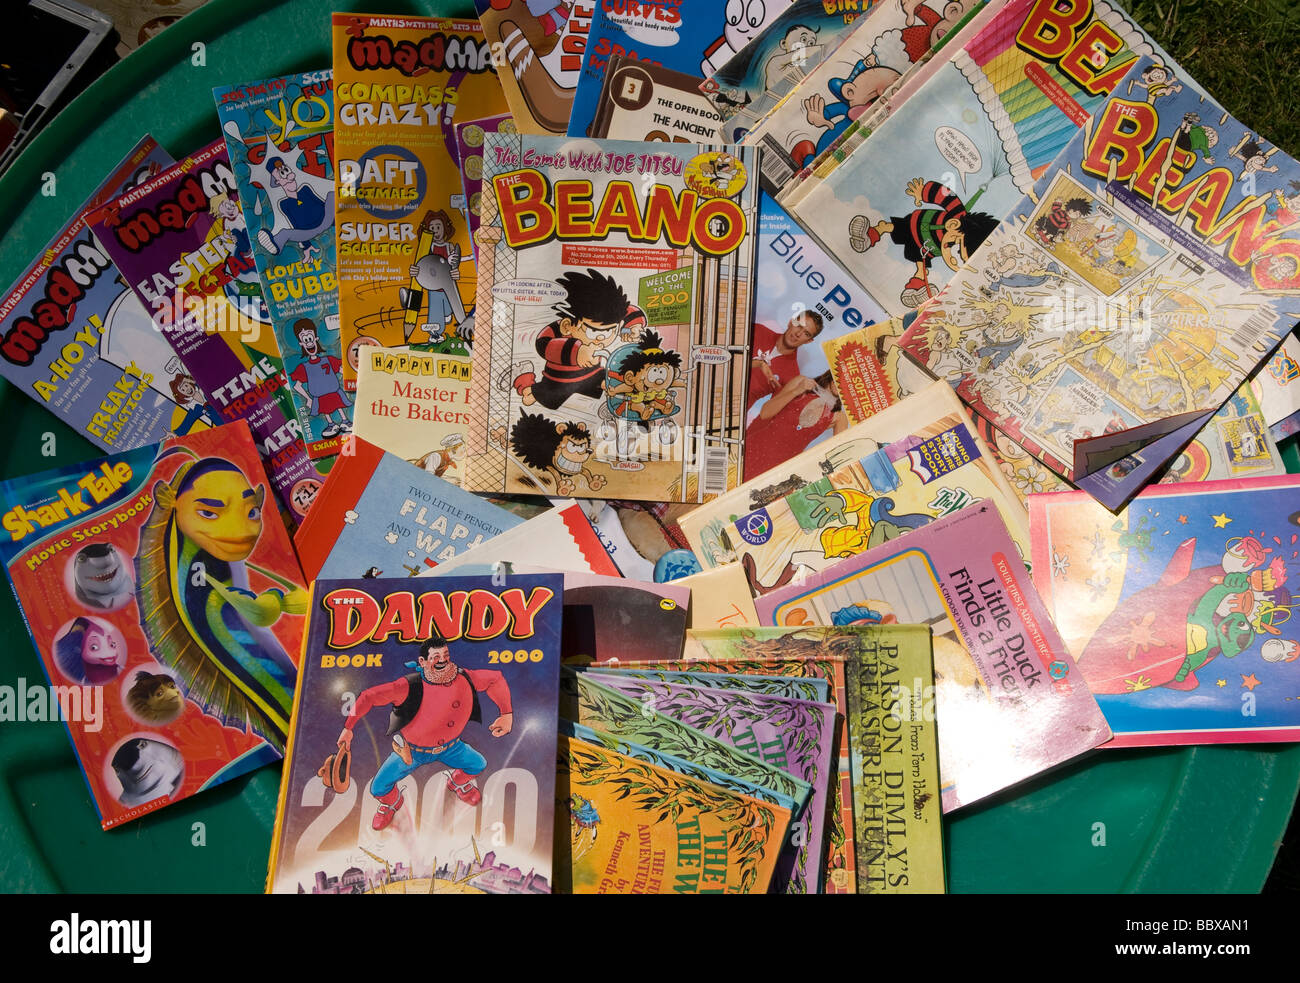 Display of traditional comics on sale at a school summer fete, Medstead, Alton, Hampshire, UK. - Stock Image